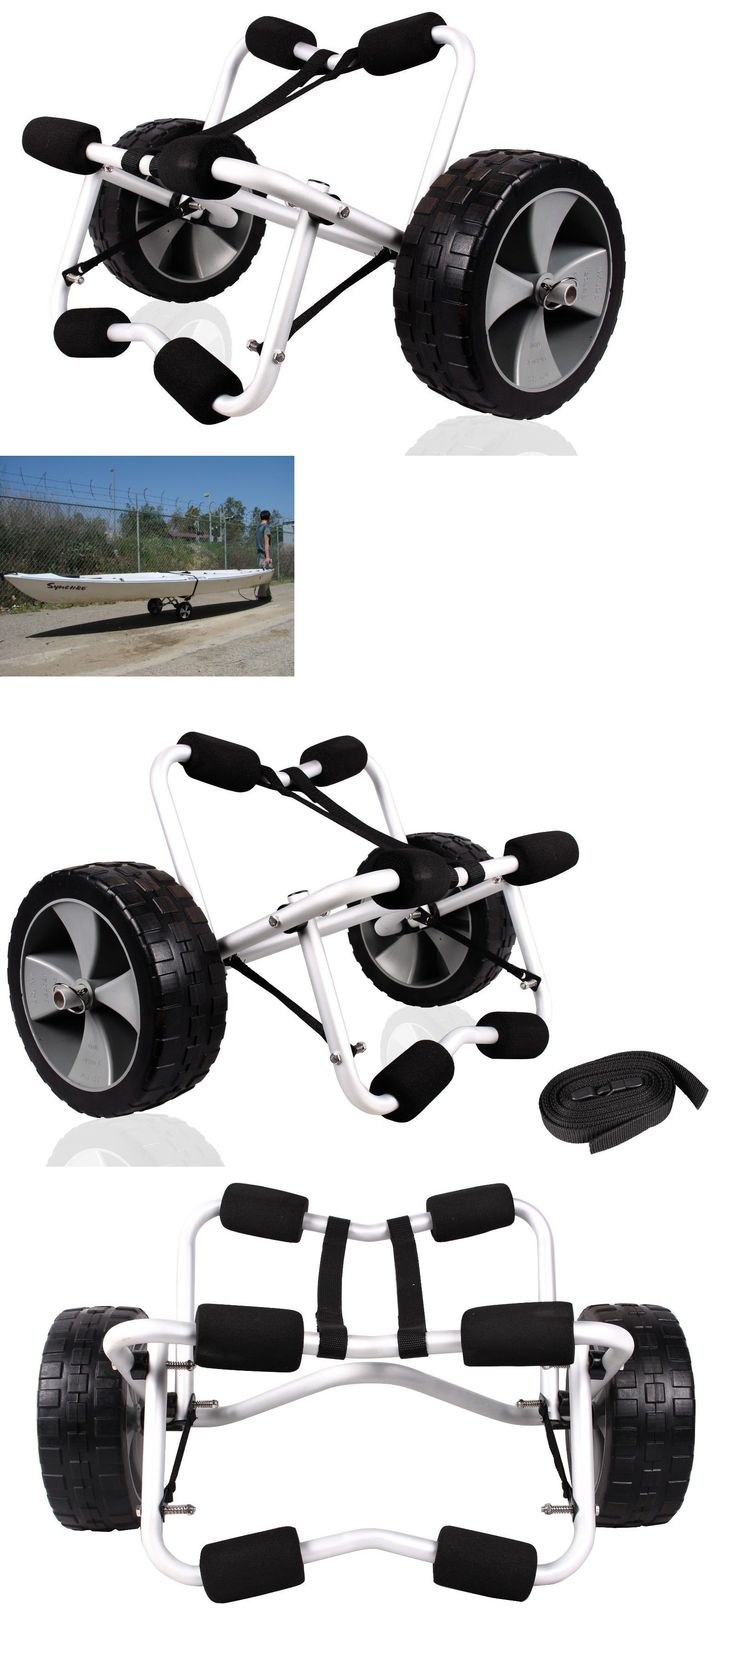 Accessories 87089: Deluxe Boat Kayak Canoe Carrier Dolly Trailer Tote Trolley Transport Cart Wheels -> BUY IT NOW ONLY: $42.95 on eBay!